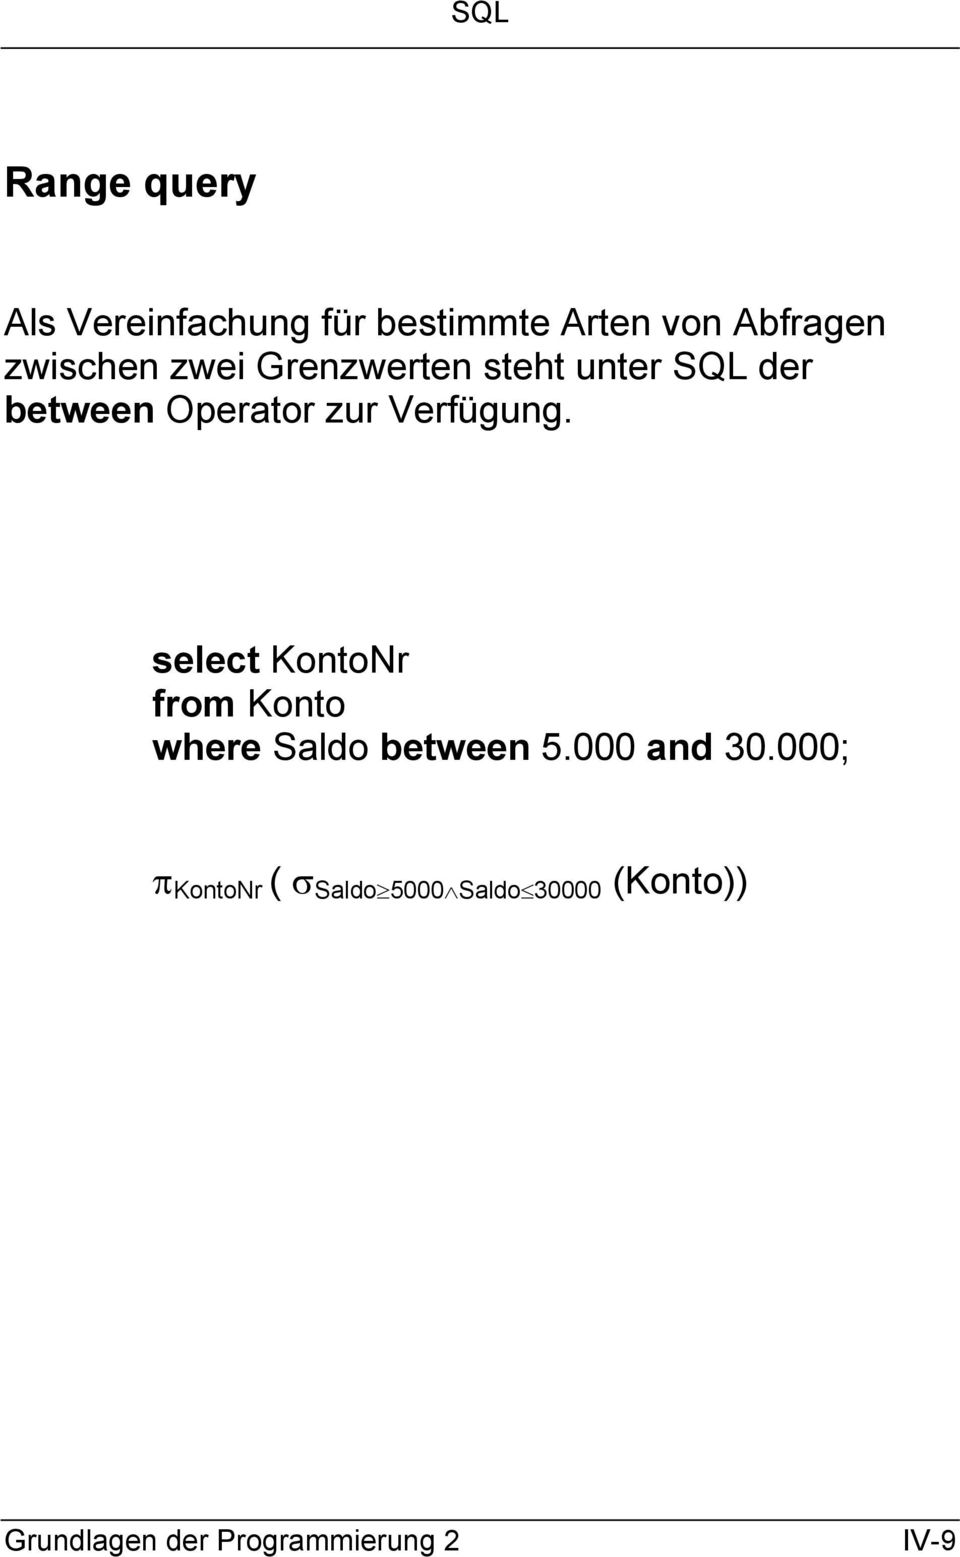 zur Verfügung. select KontoNr from Konto where Saldo between 5.